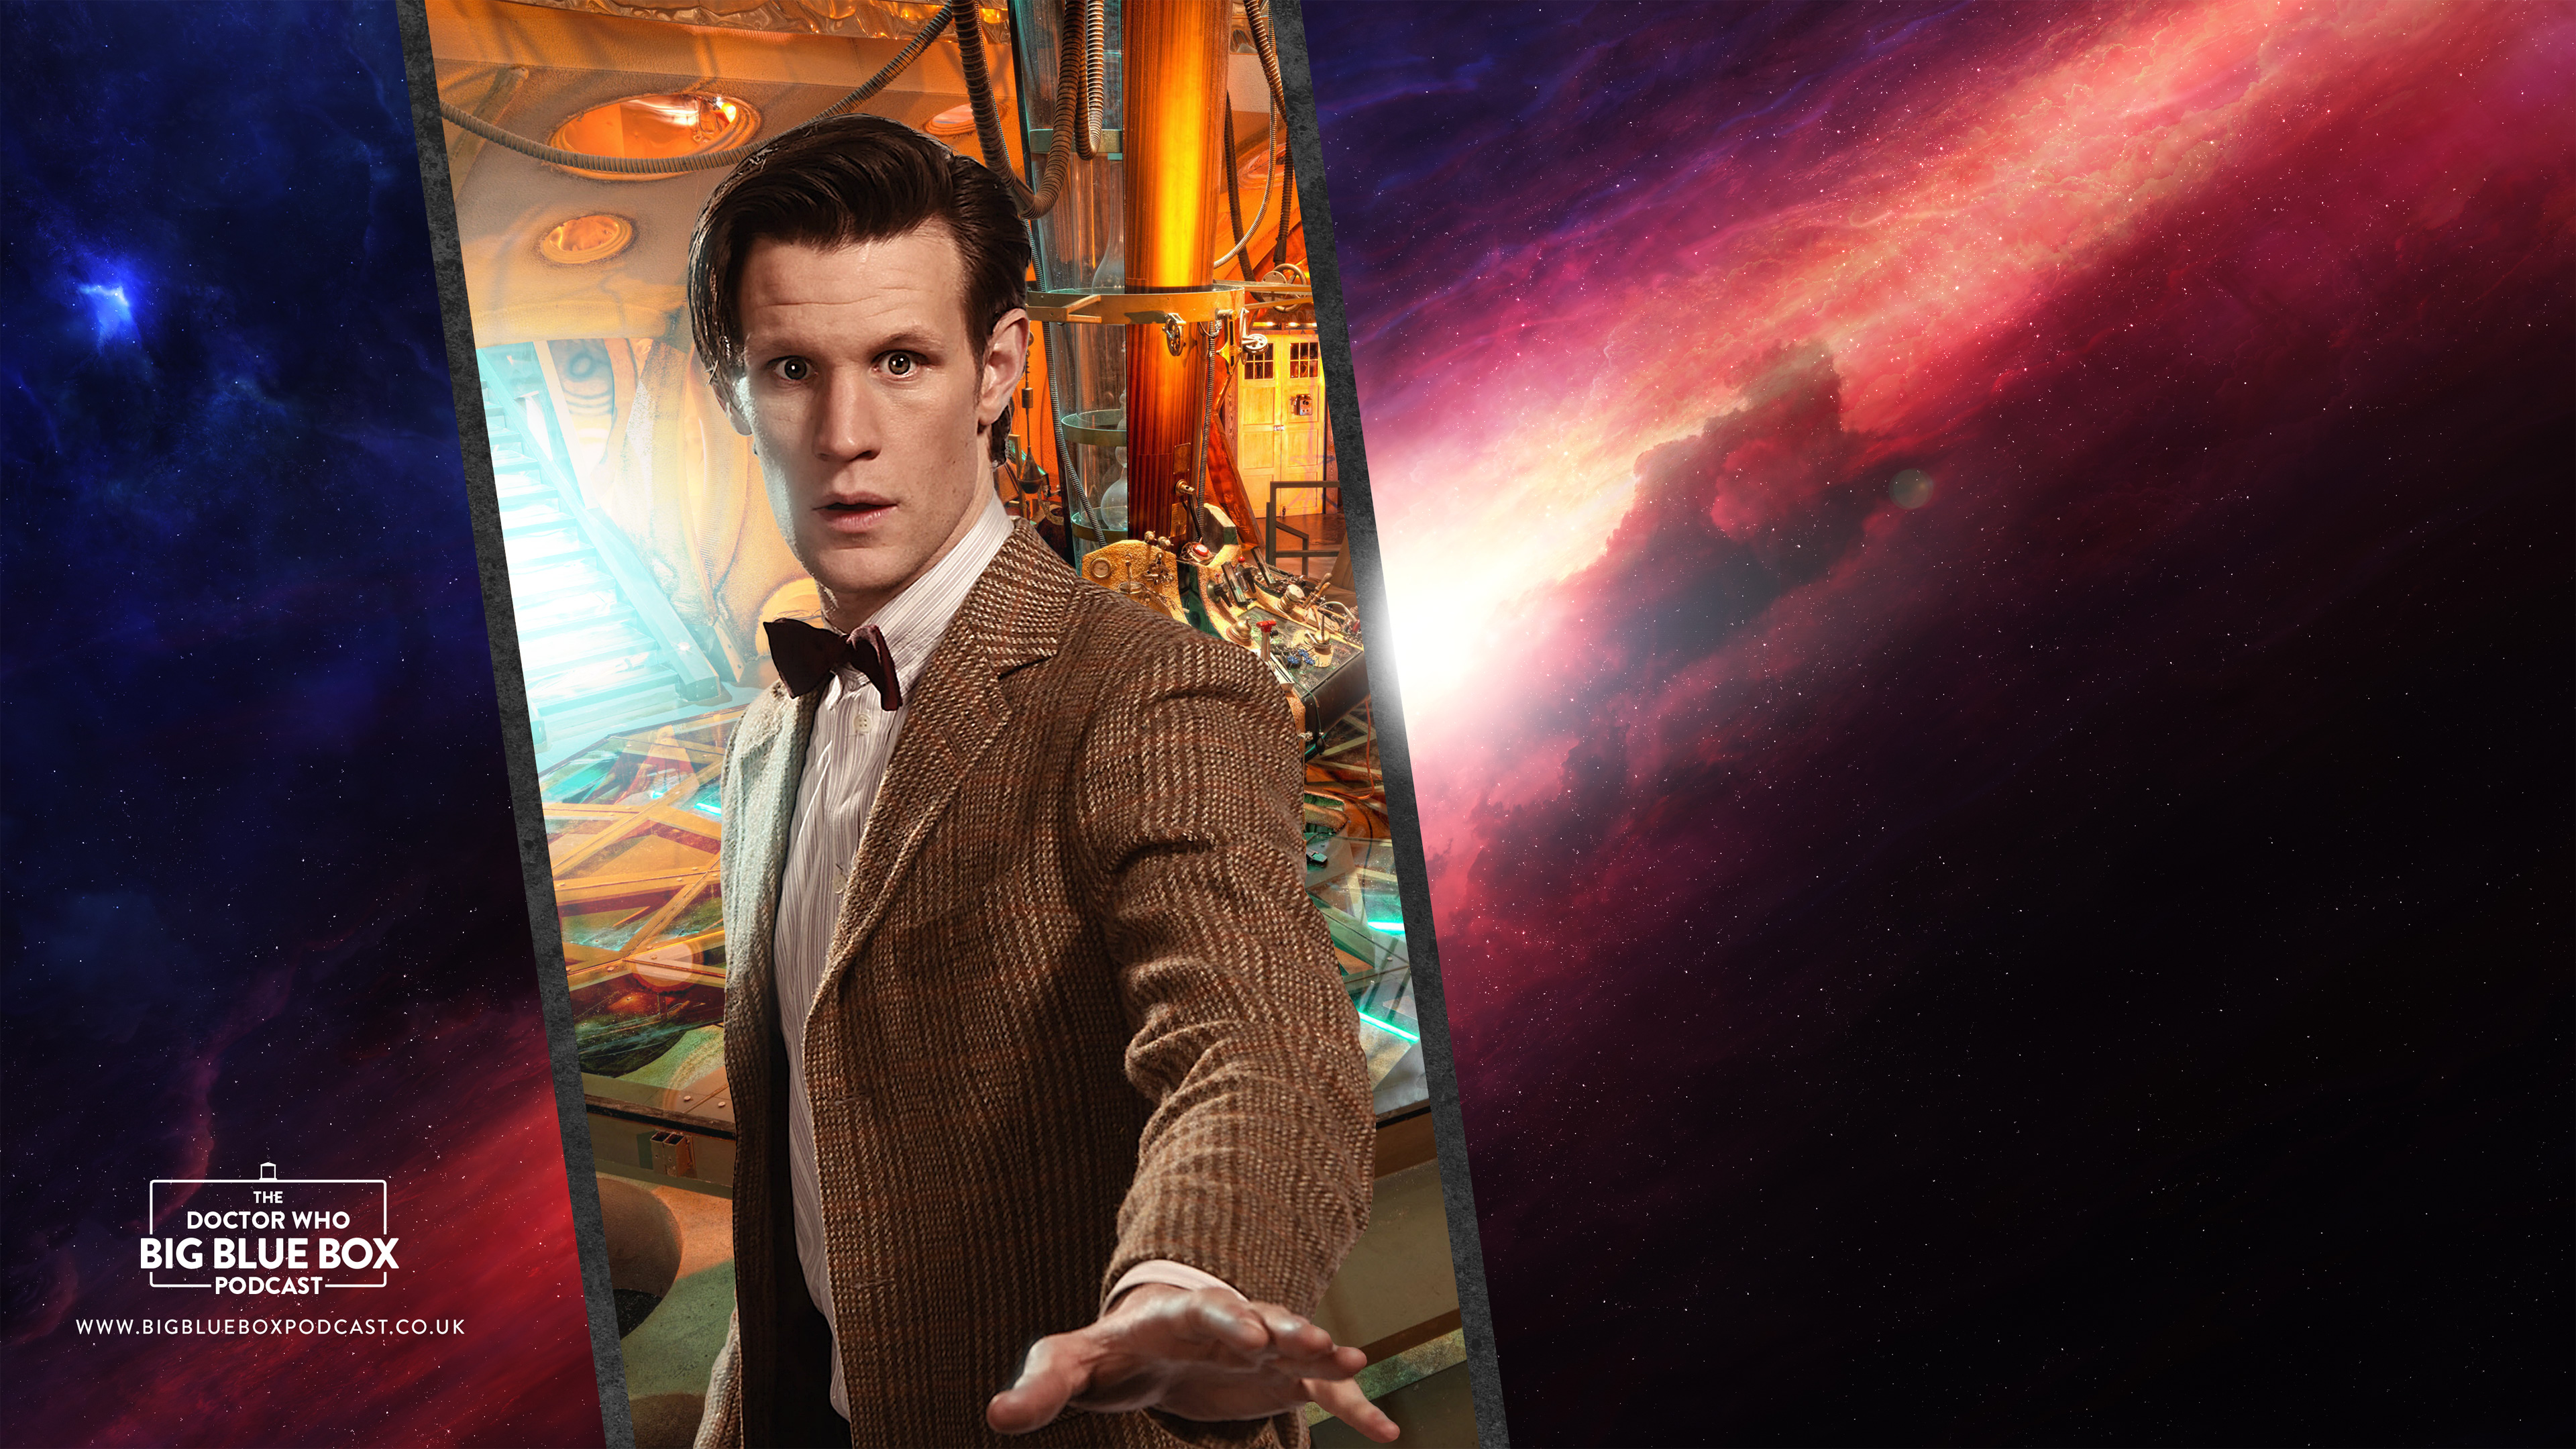 9th Doctor 11th Doctor Wallpaper Hd 127303 Hd